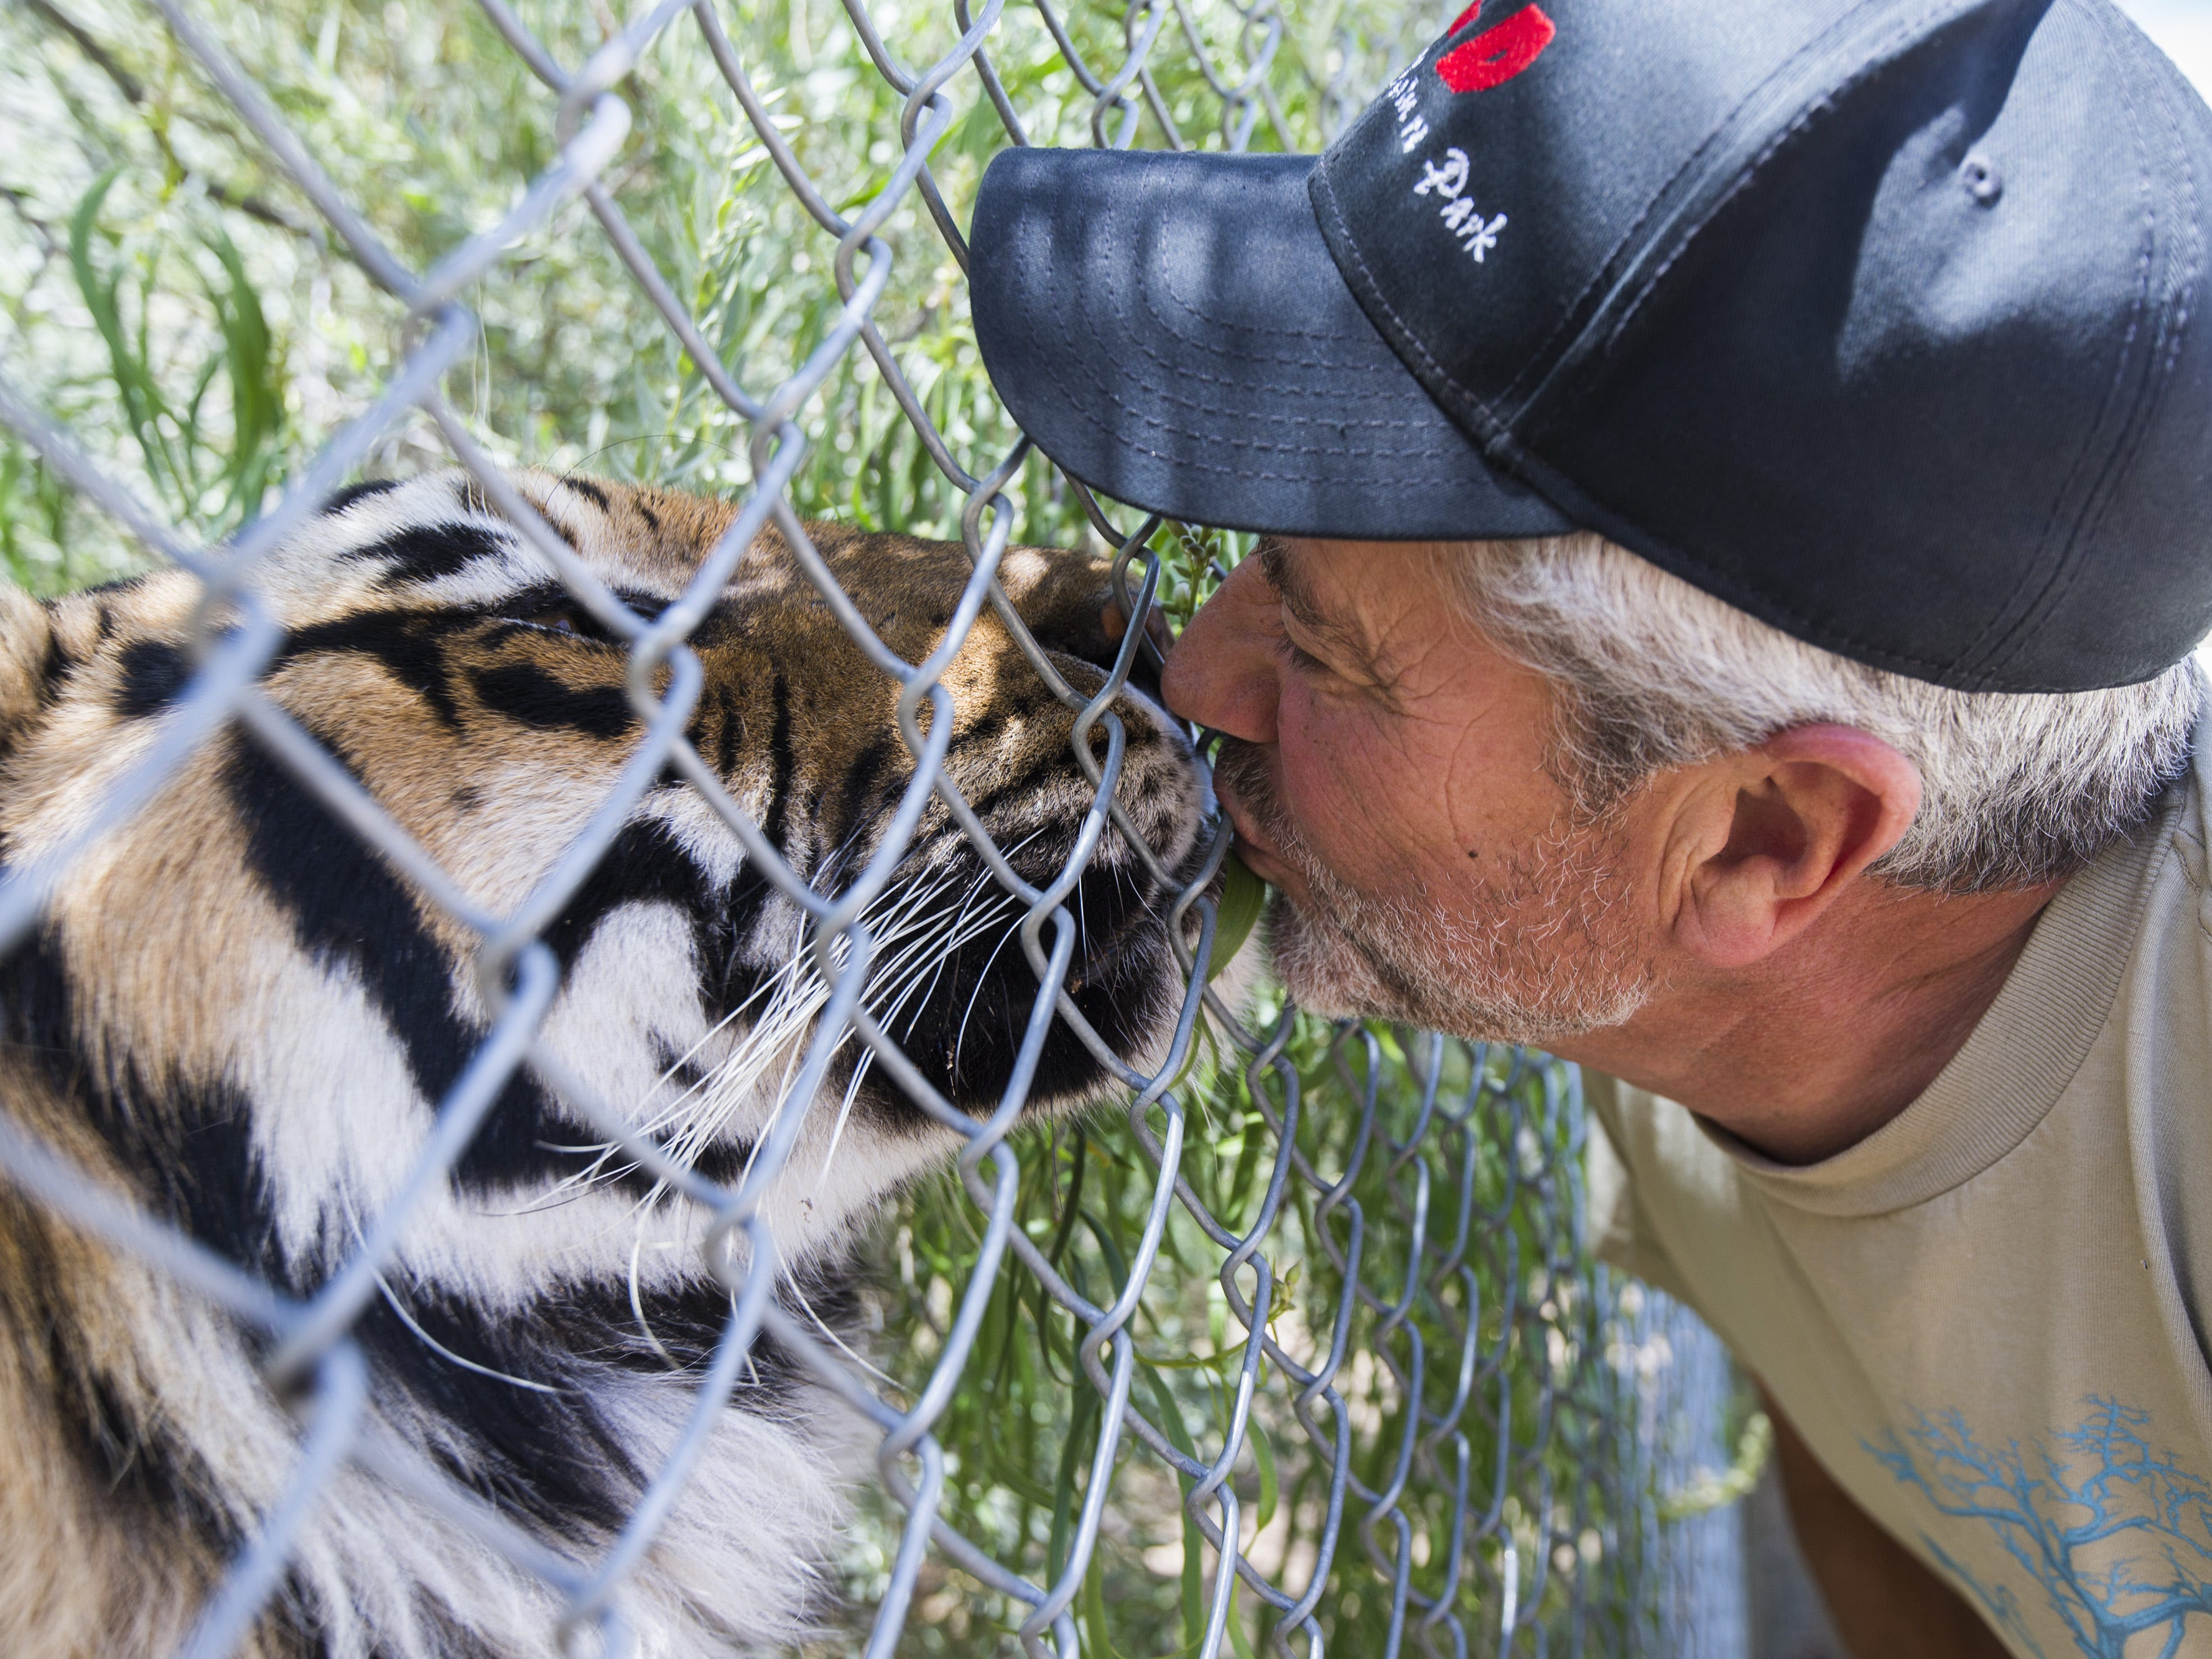 Keepers of the Wild founder Jonathan Kraft kisses Sheena, a Bengal tiger, in Valentine, Ariz., on May 27, 2015. The nonprofit sanctuary for retired Las Vegas show tigers and other exotic animals is looking to expand north of Kingman.